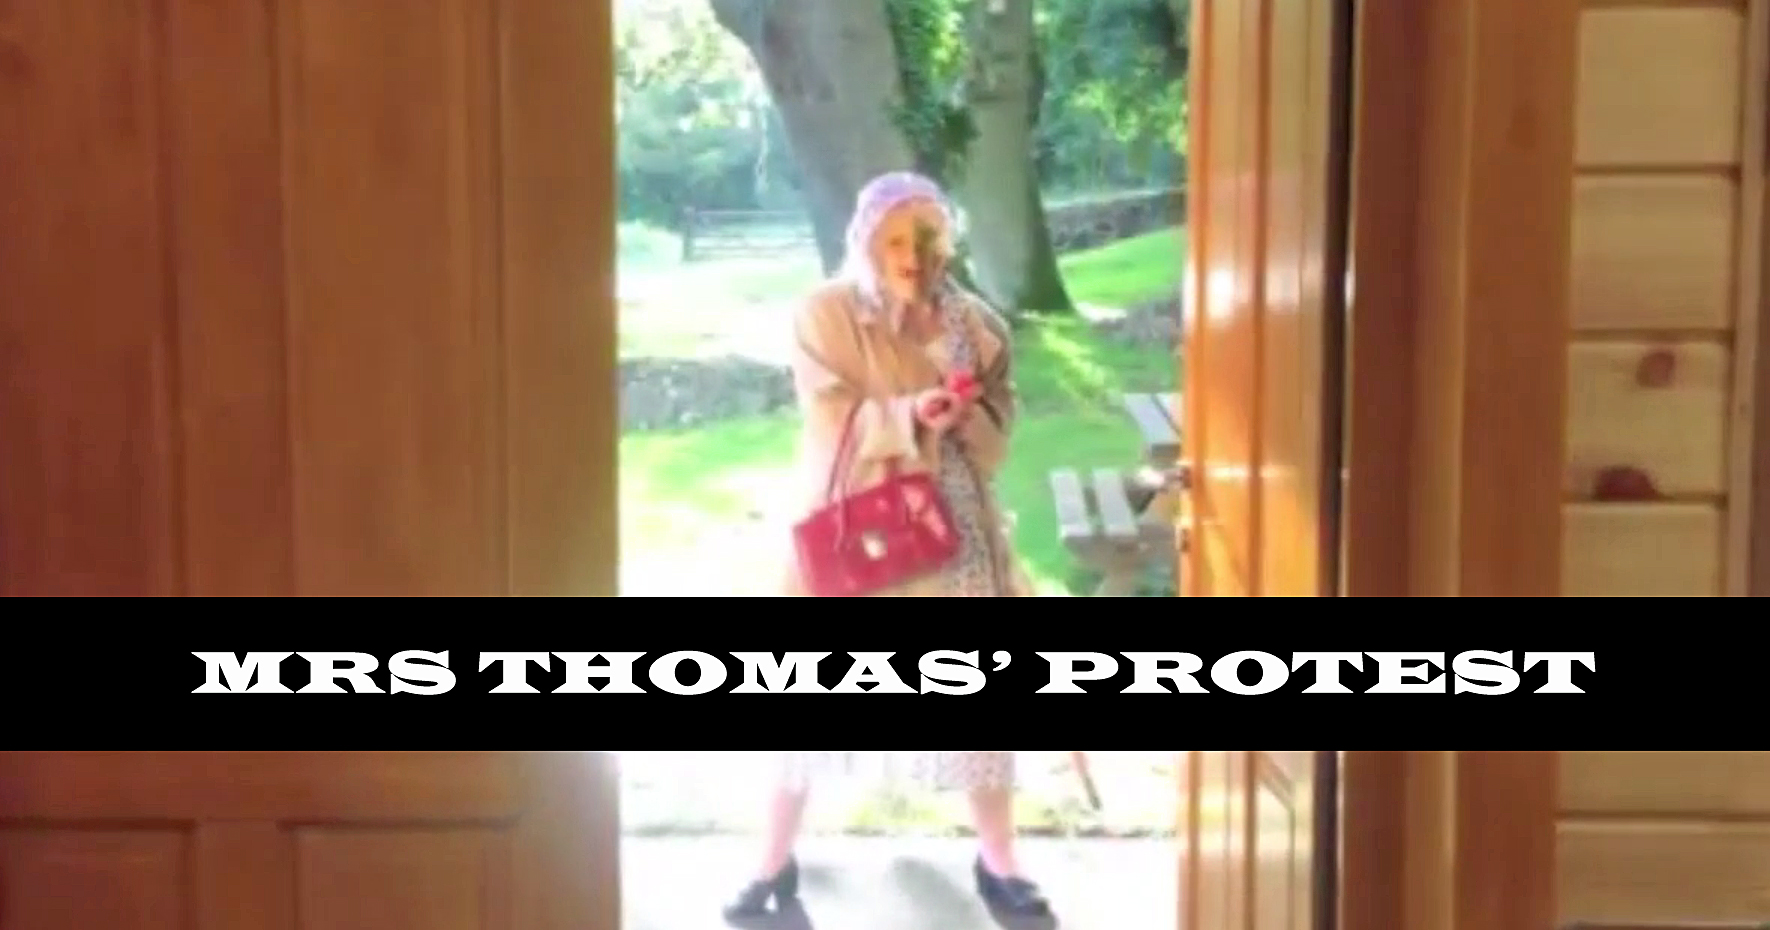 Mrs Thomas' Protest (2012)